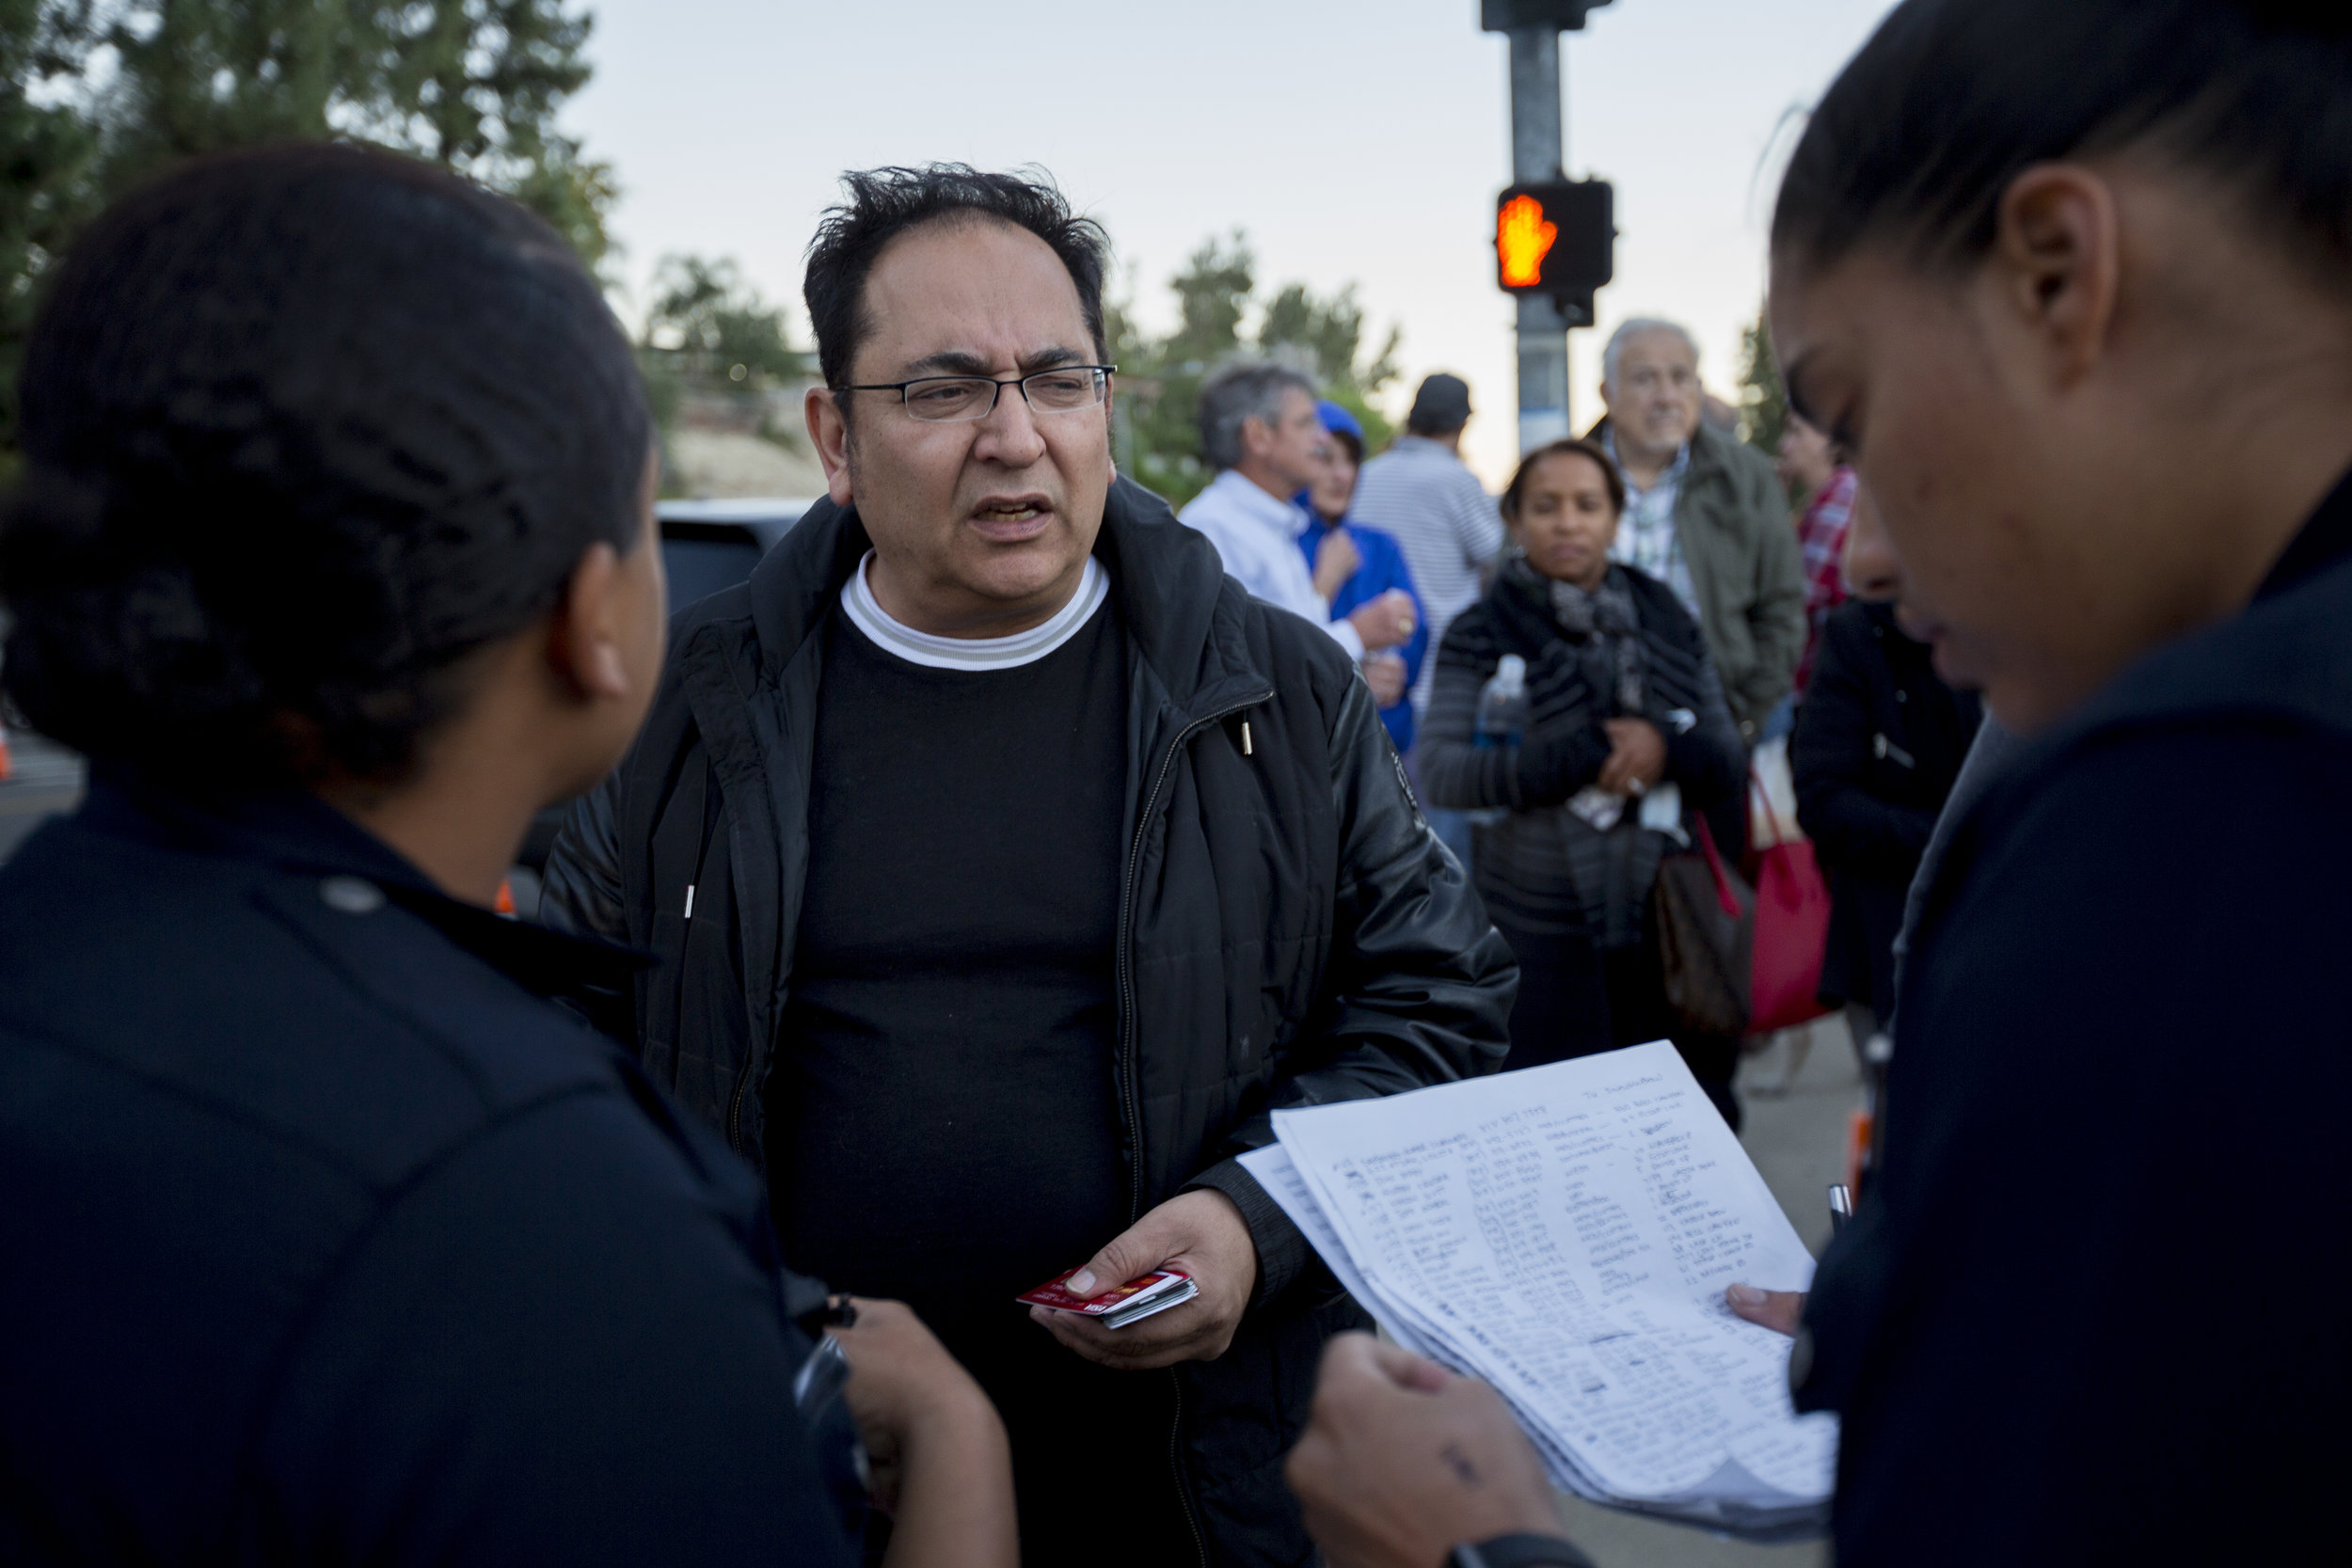 Bell Canyon neighborhood residents gather along Valley Circle Blvd to place their names on a list for a police escort to their homes on November 12, 2018 in West Hills, Calif. Police are allowing residents to have up to 10 minutes to gather any important items since an evacuation order is in effect for the area. (Jose Lopez)